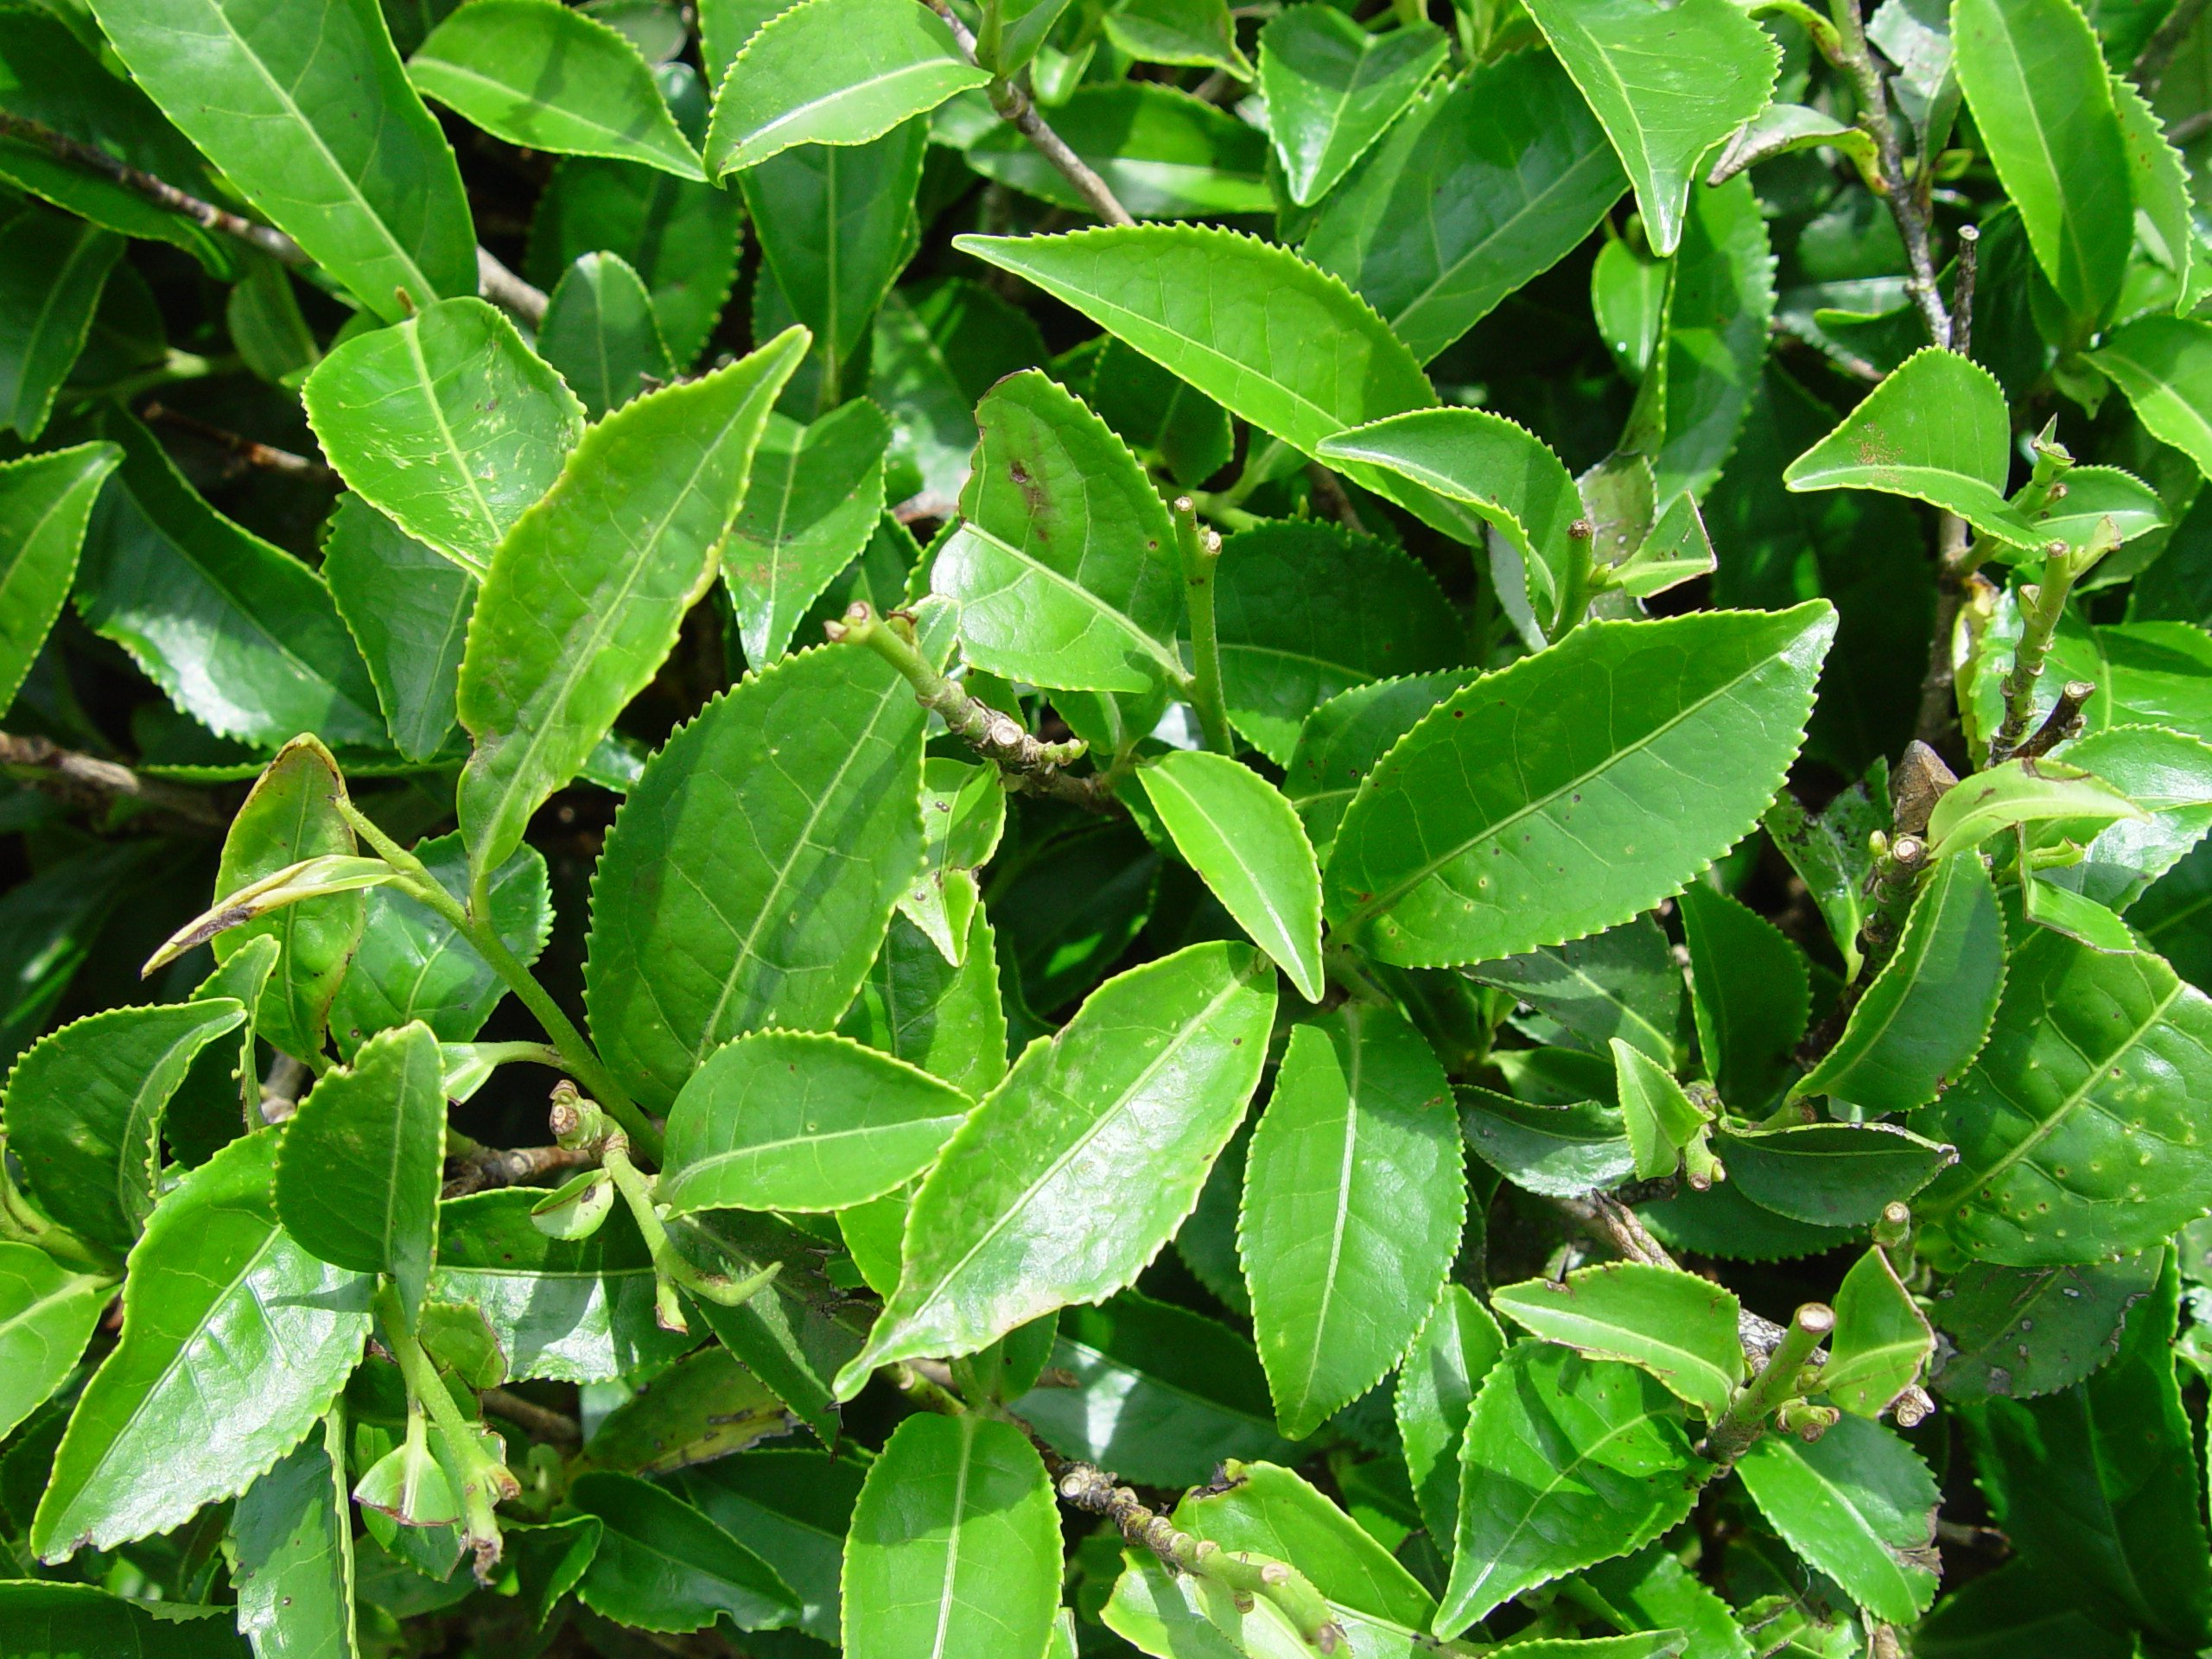 Leaves of Camellia Sinensis (Public Domain)